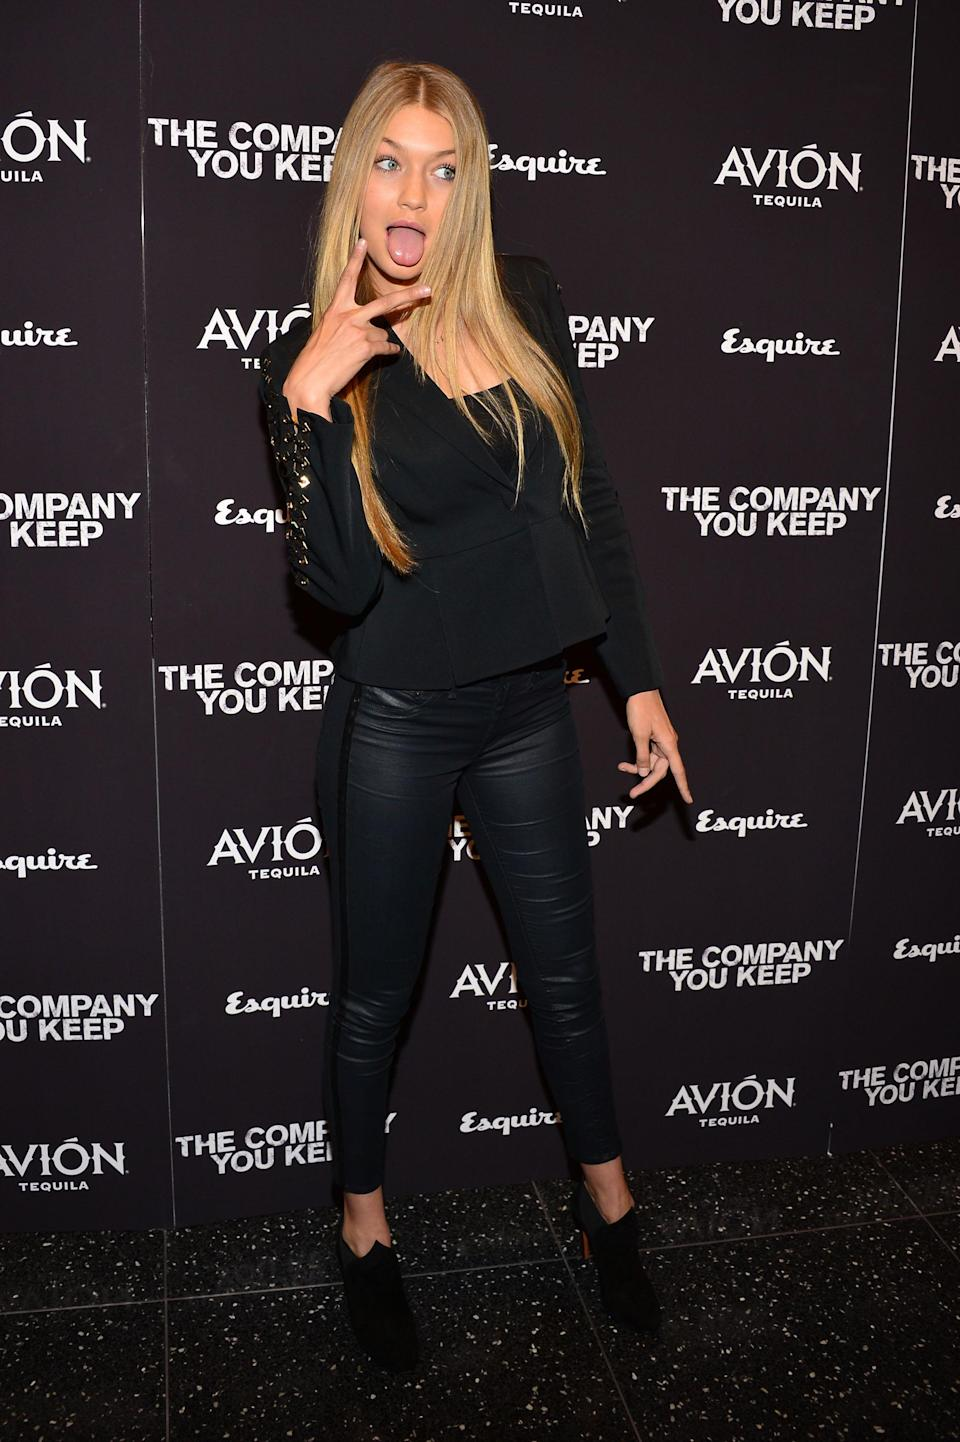 Here's Hadid attending a movie premiere in New York.